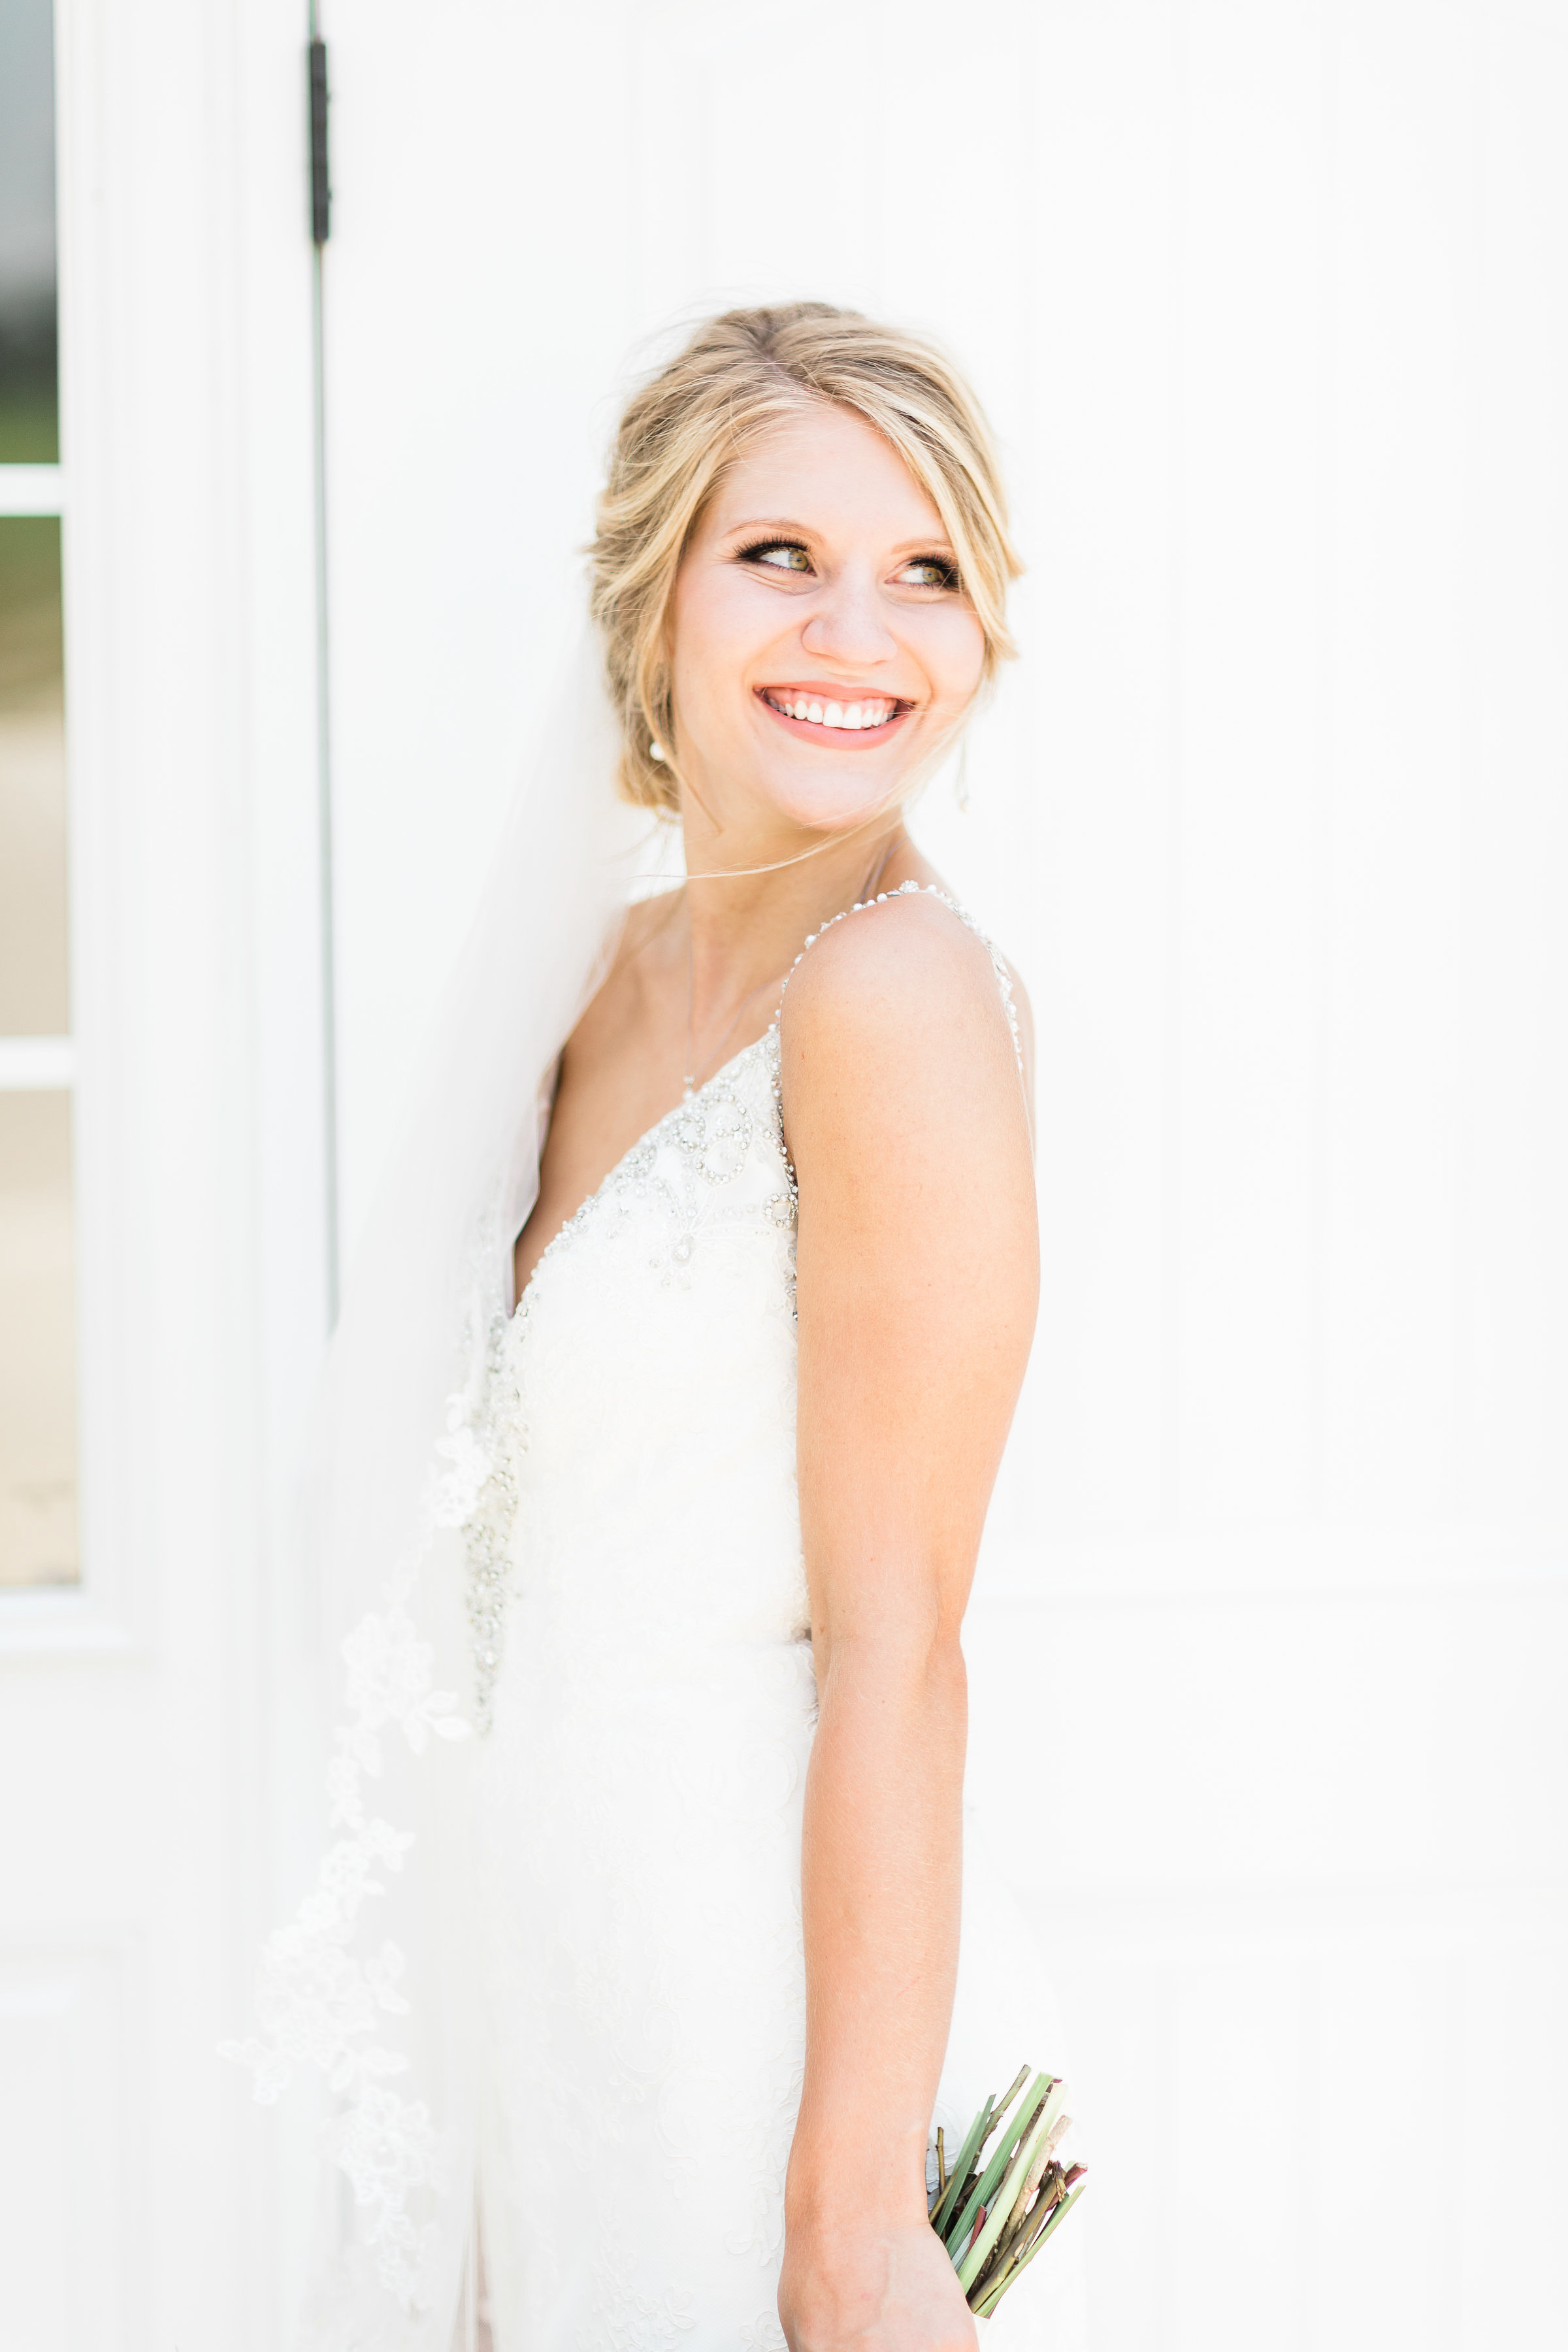 lauren day photography cincinnati wedding photographer-1.jpg